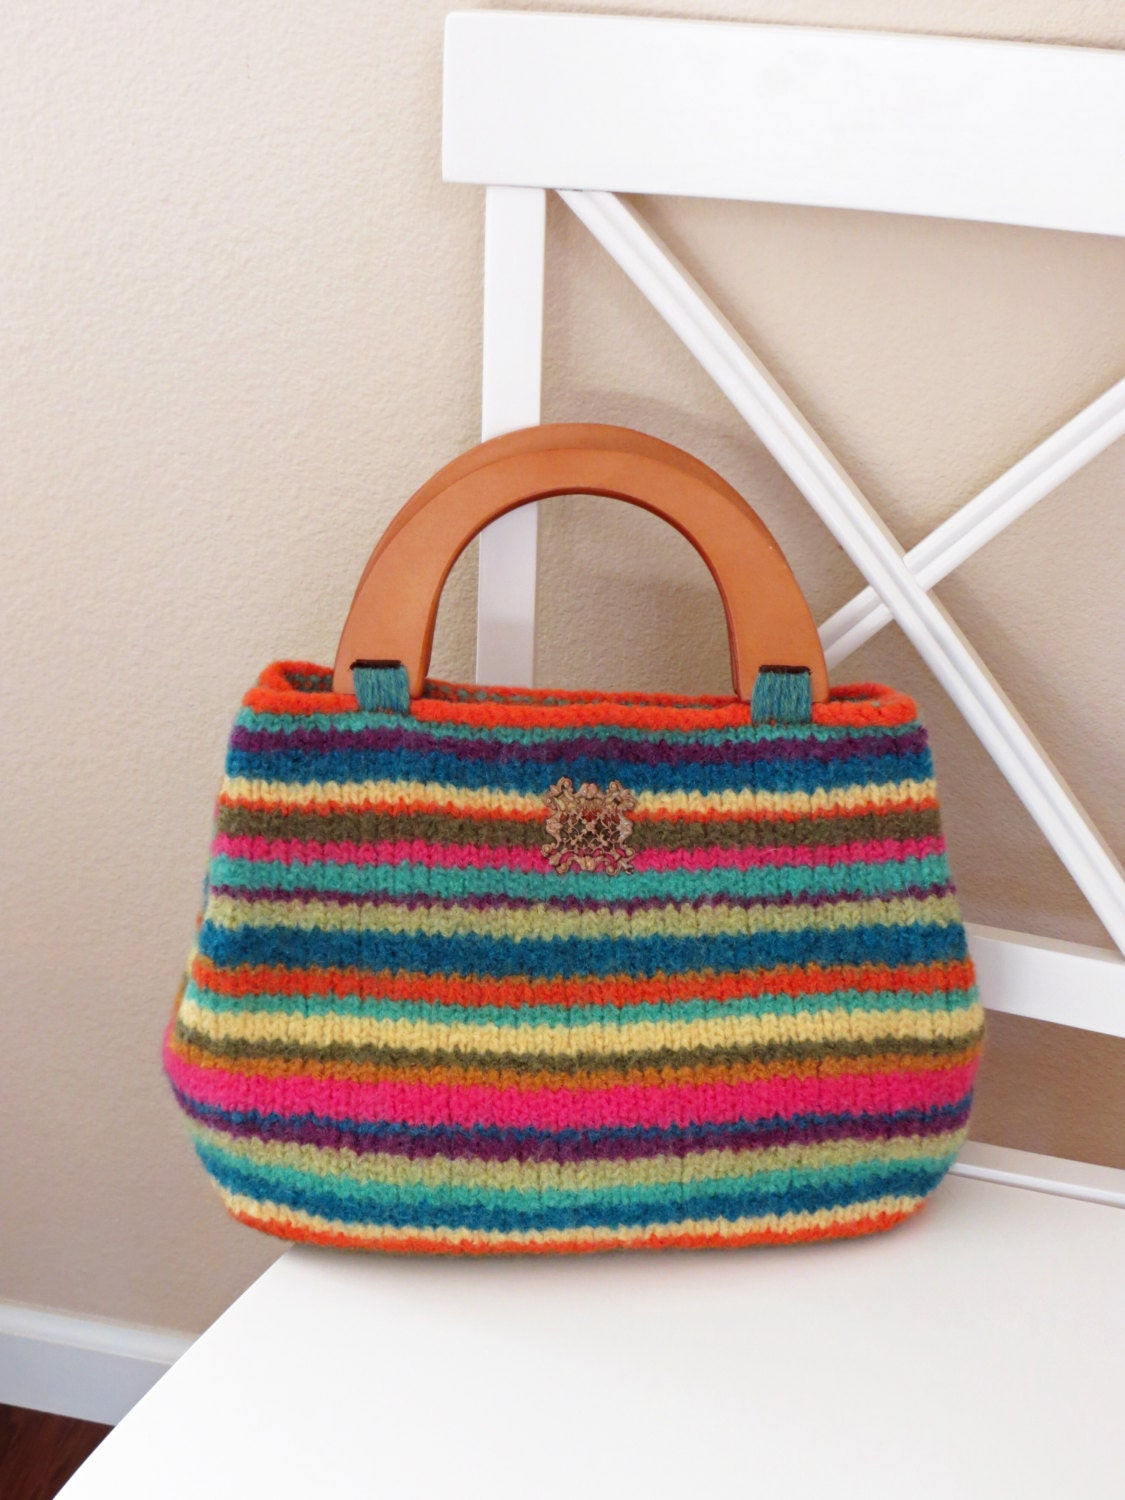 Knitted Purse Patterns Magnificent Ideas